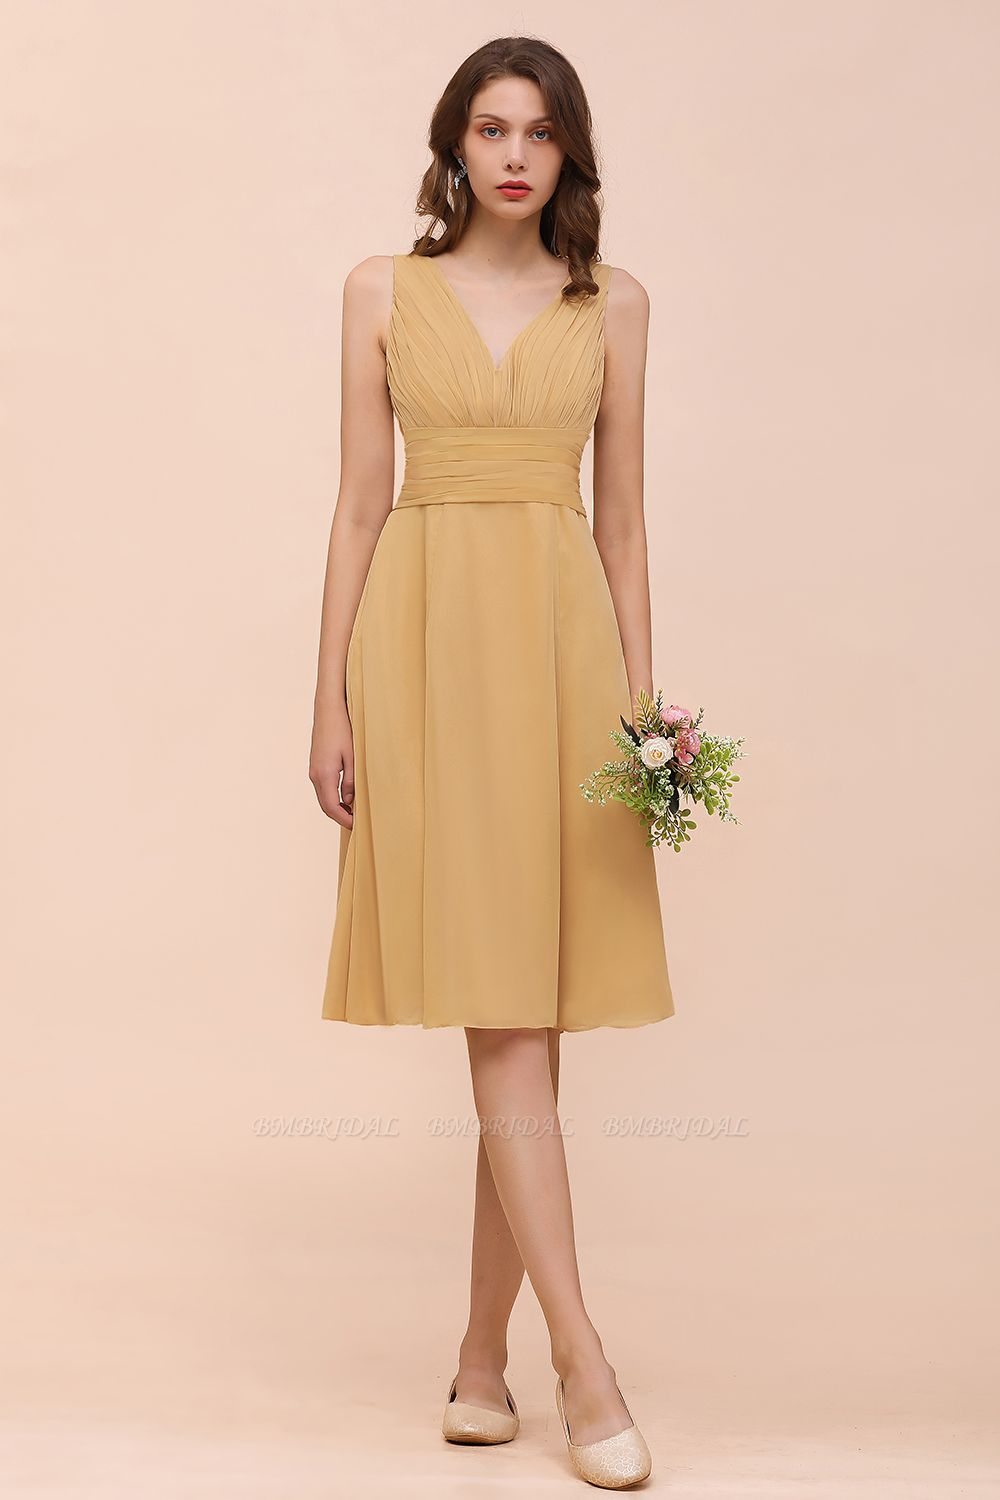 BMbridal Affordable V-Neck Ruffle Gold Short Bridesmaid Dresses with Bow